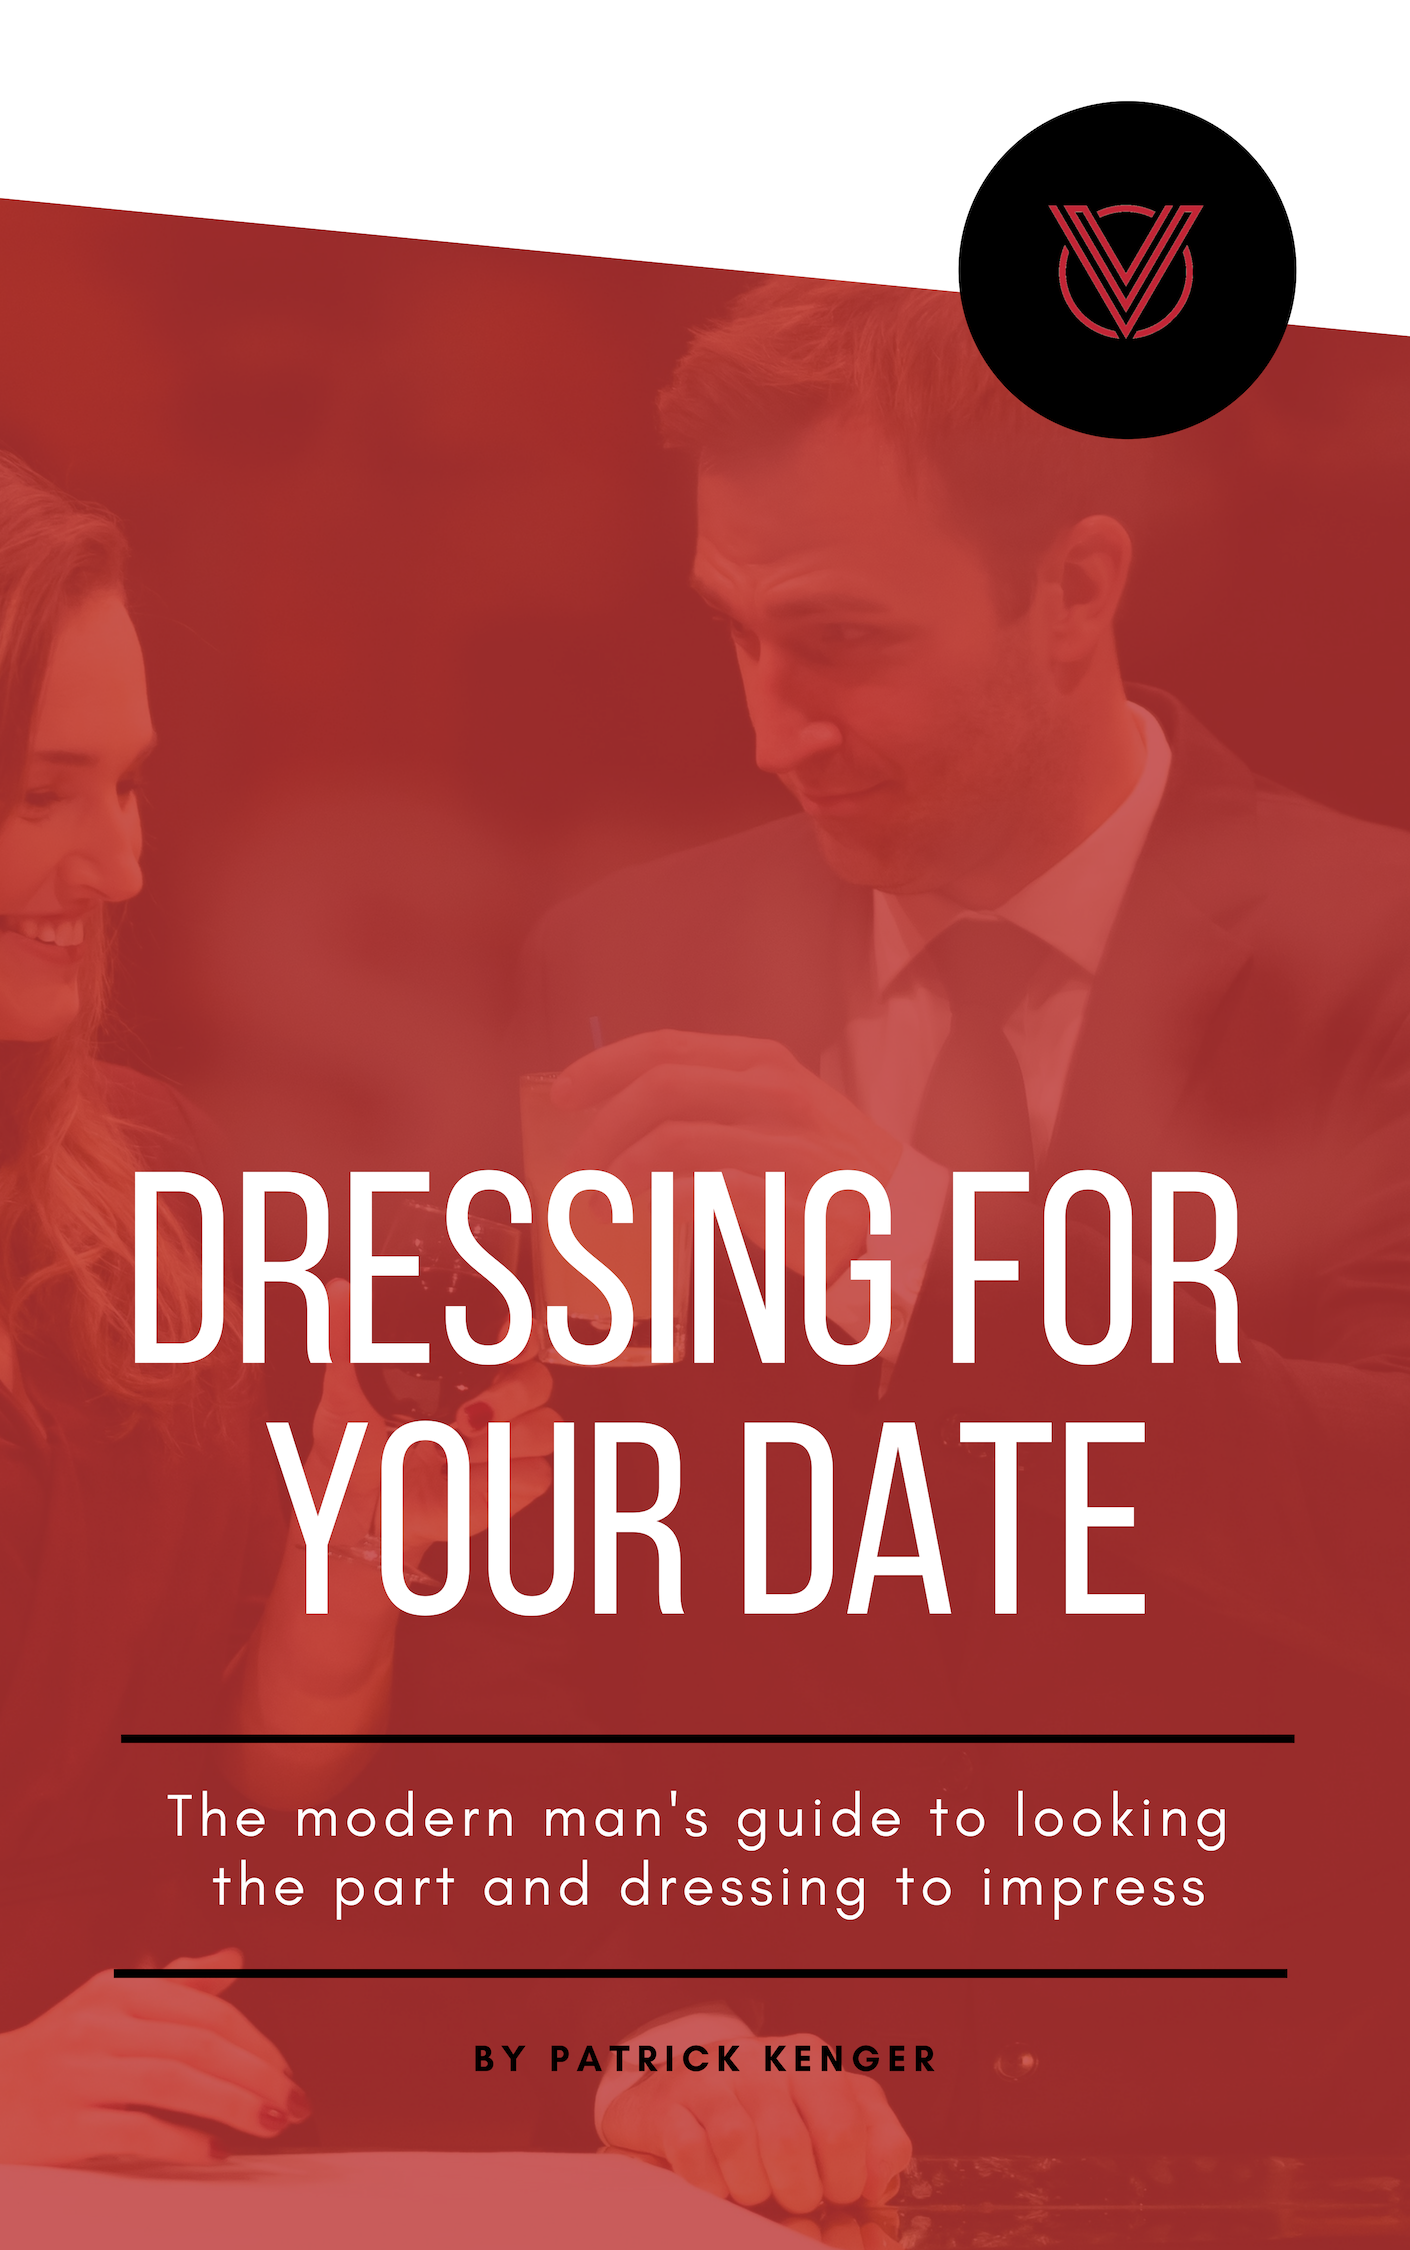 Dressing-for-your-date-Guide.png